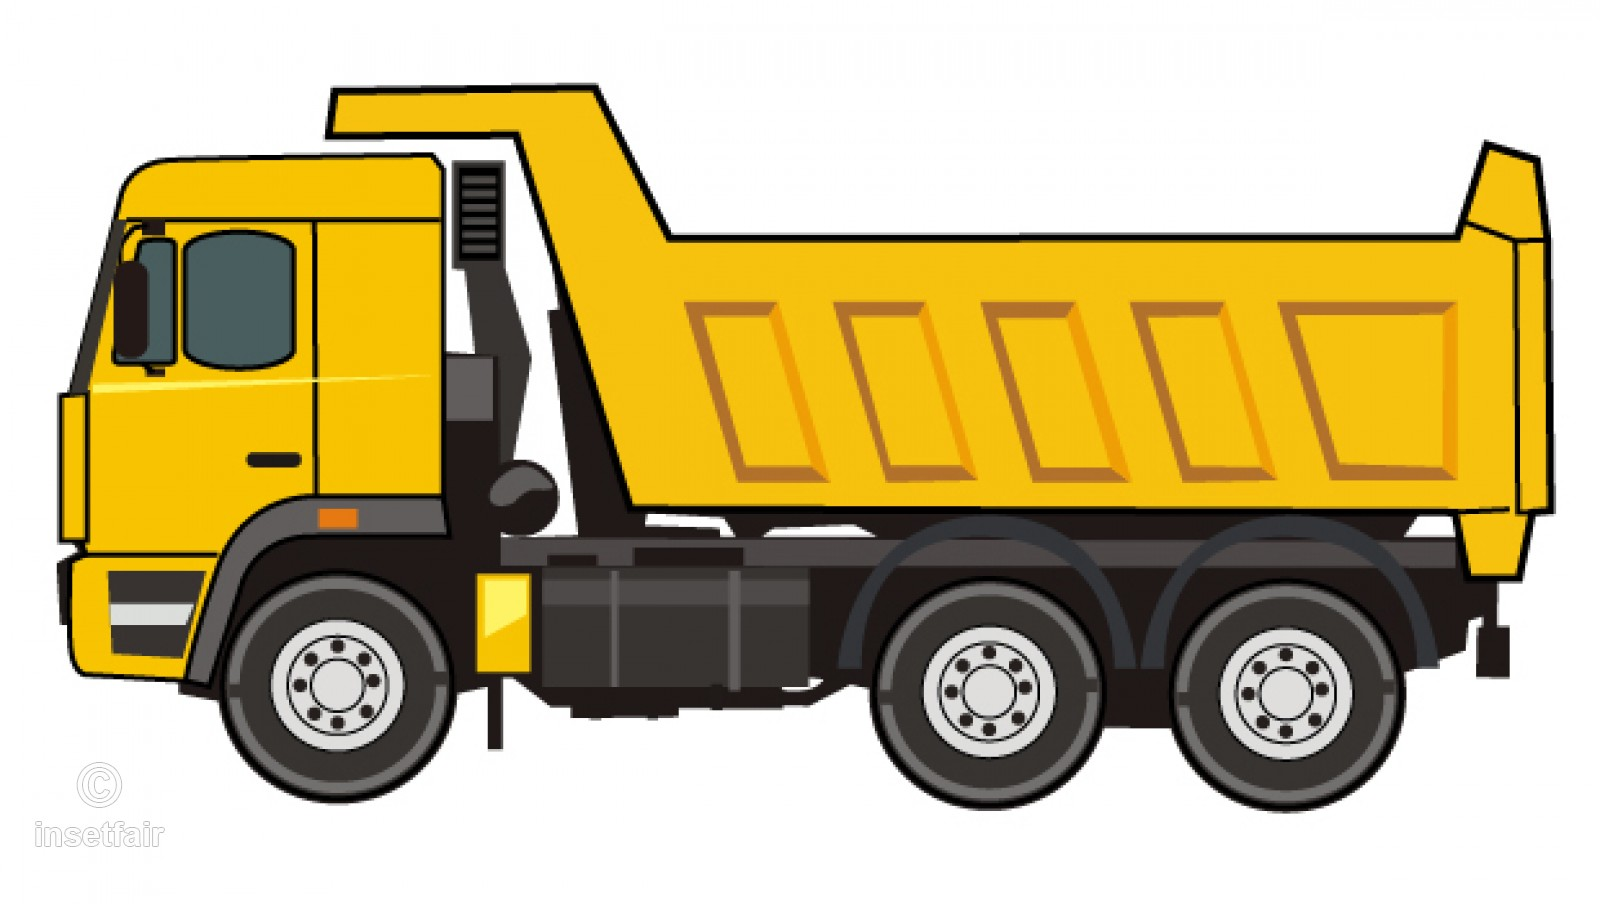 Truck clipart clipart freeuse Dump truck flat vector clipart illustration PNG file clipart freeuse